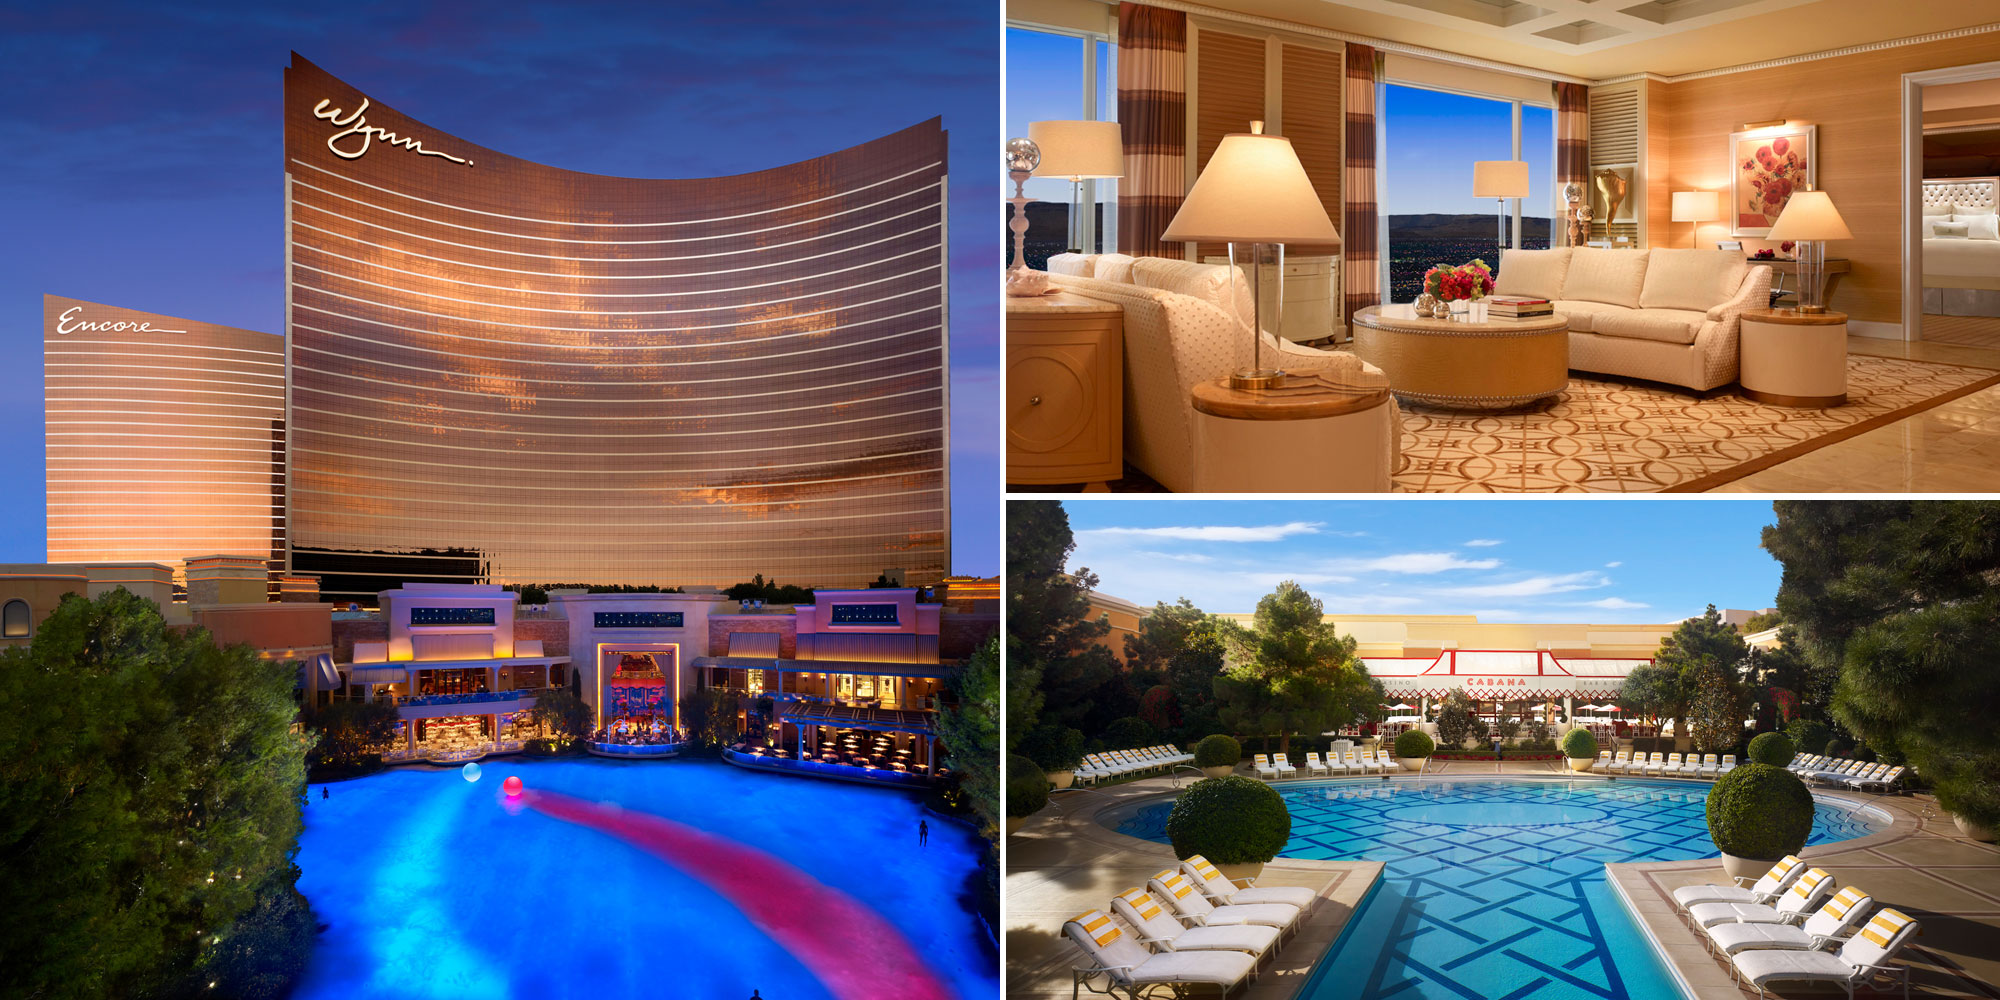 Wynn Las Vegas combined photos